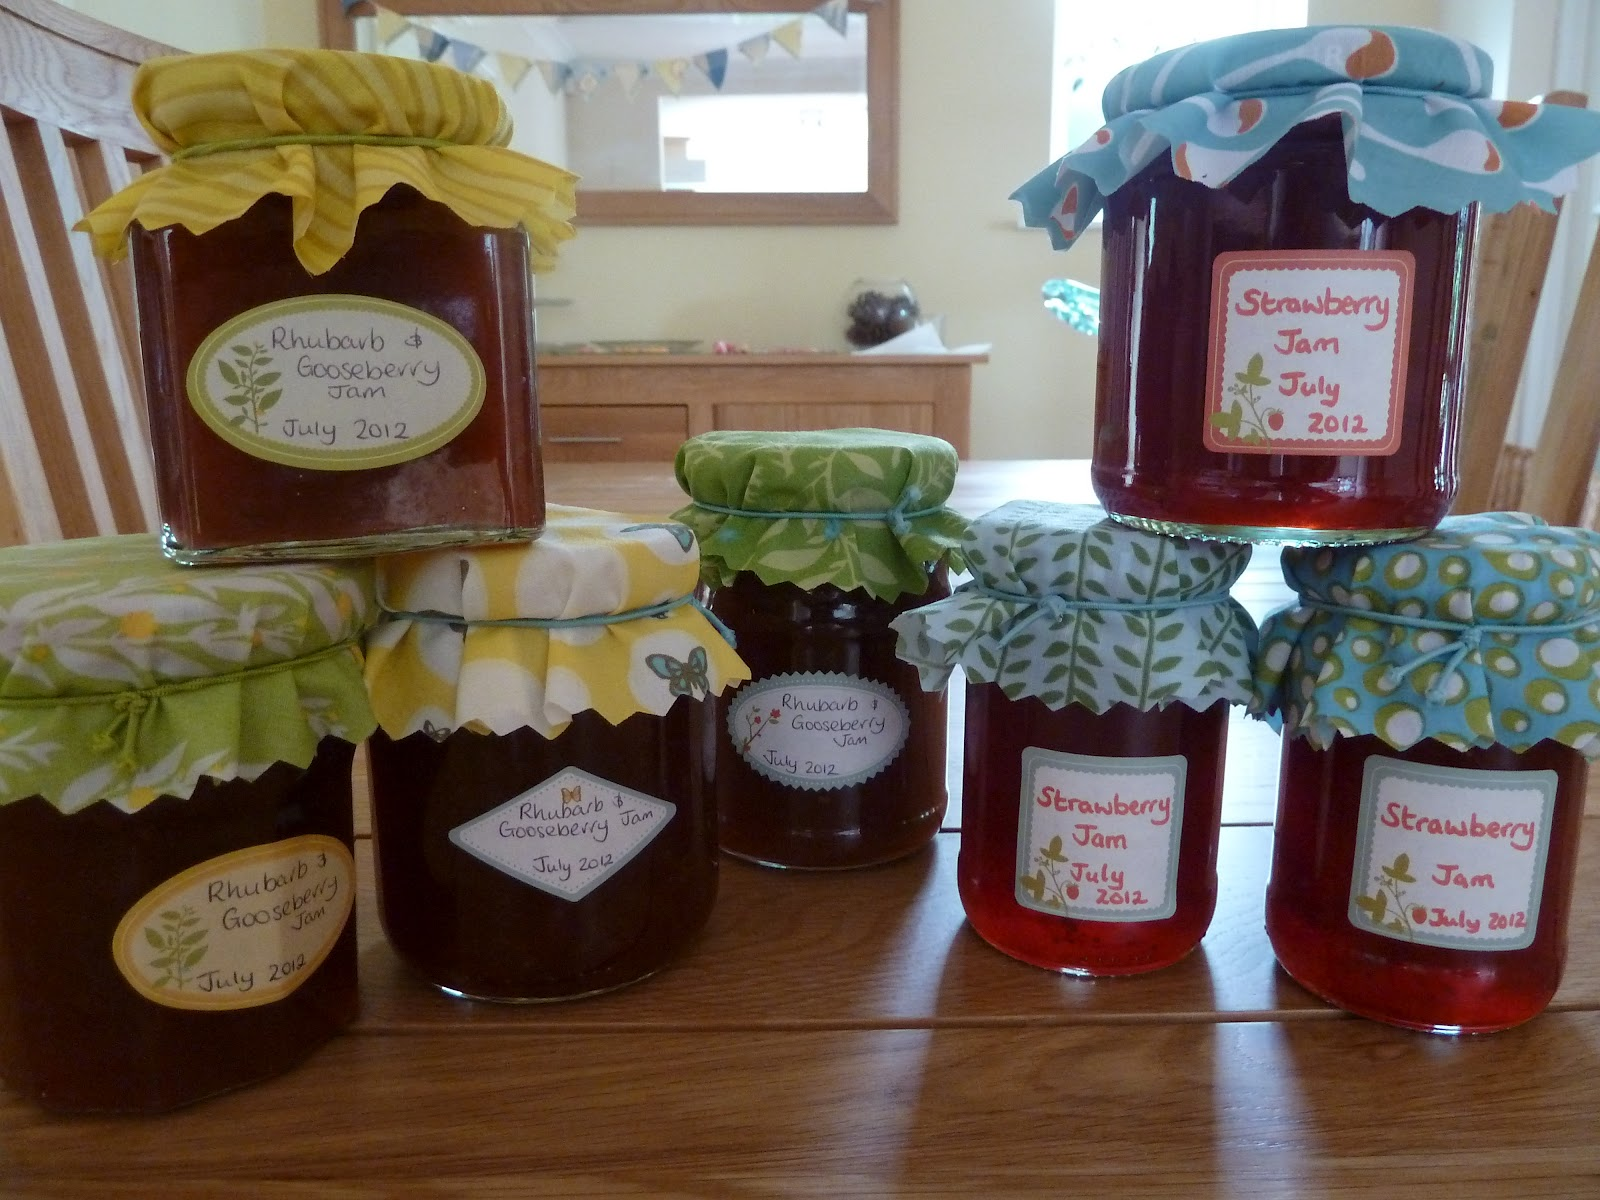 Rhubarb And Gooseberry Jam Recipe Garden Tea Cakes And Me